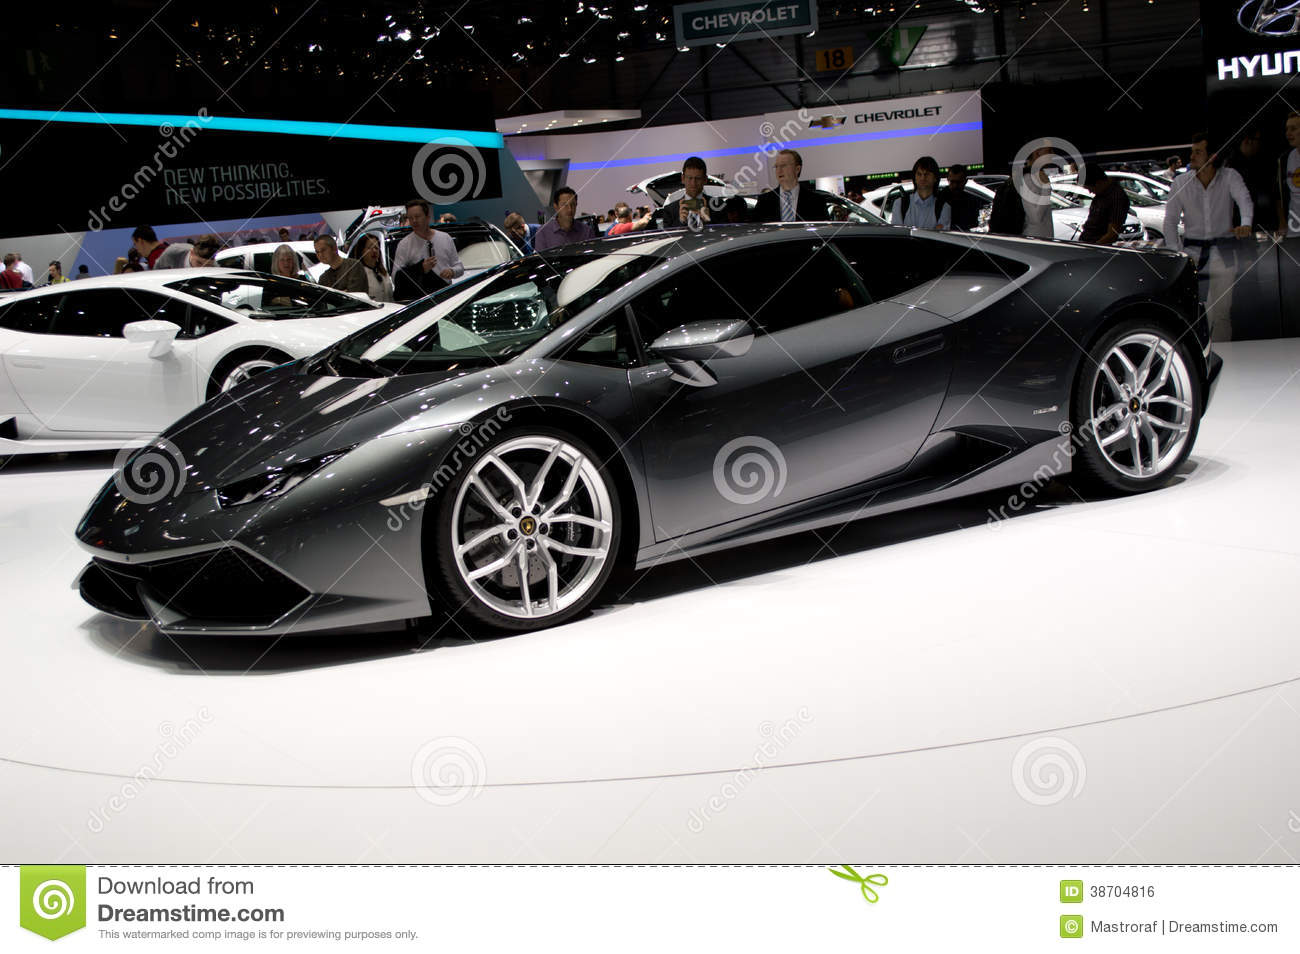 Lamborghini huracan geneva 2014 editorial photo image for Adresse salon de l auto geneve